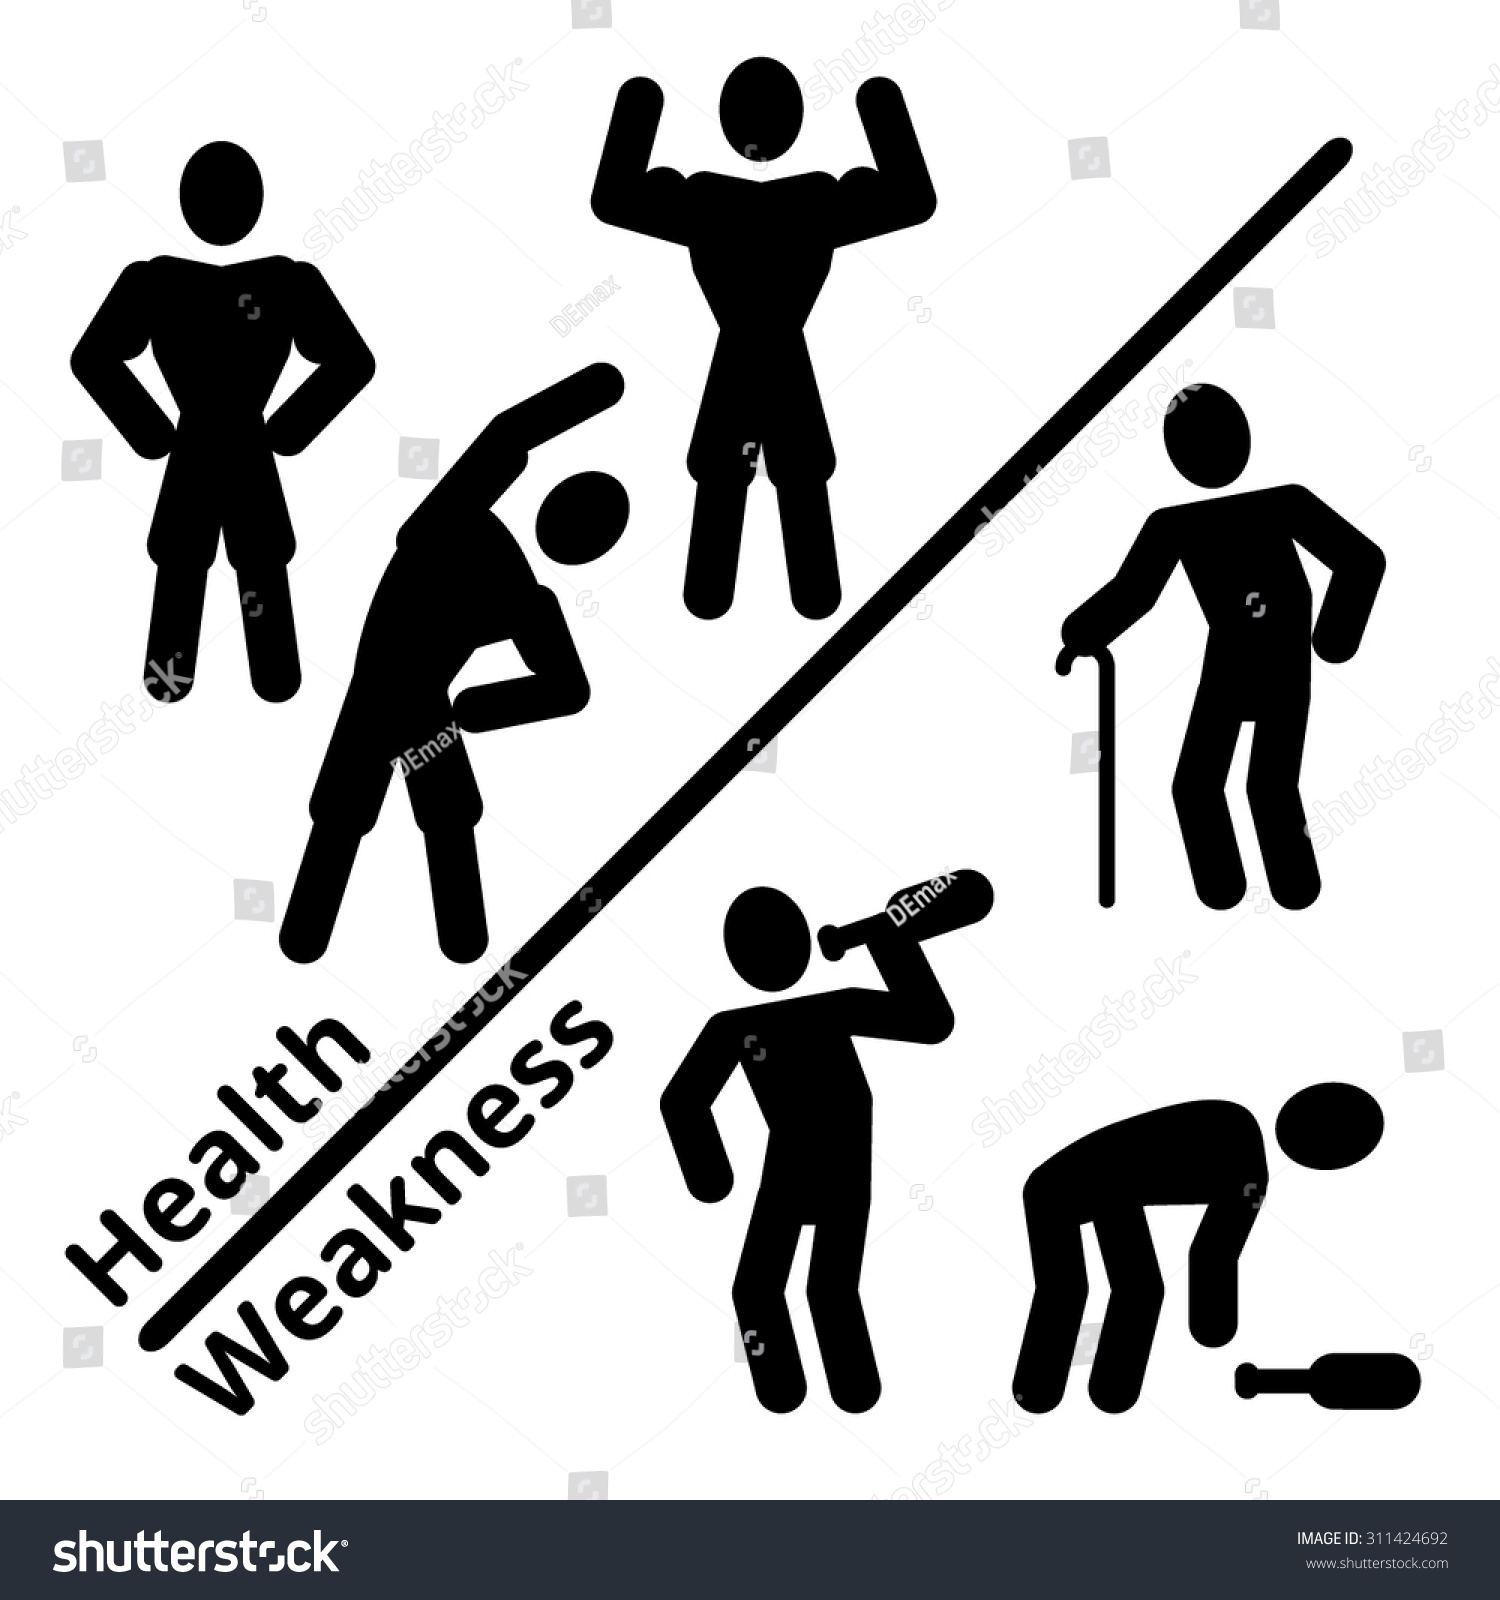 comparison healthy weakness man black silhouette stock vector comparison healthy and weakness man black silhouette symbol pictogram flat vector icons